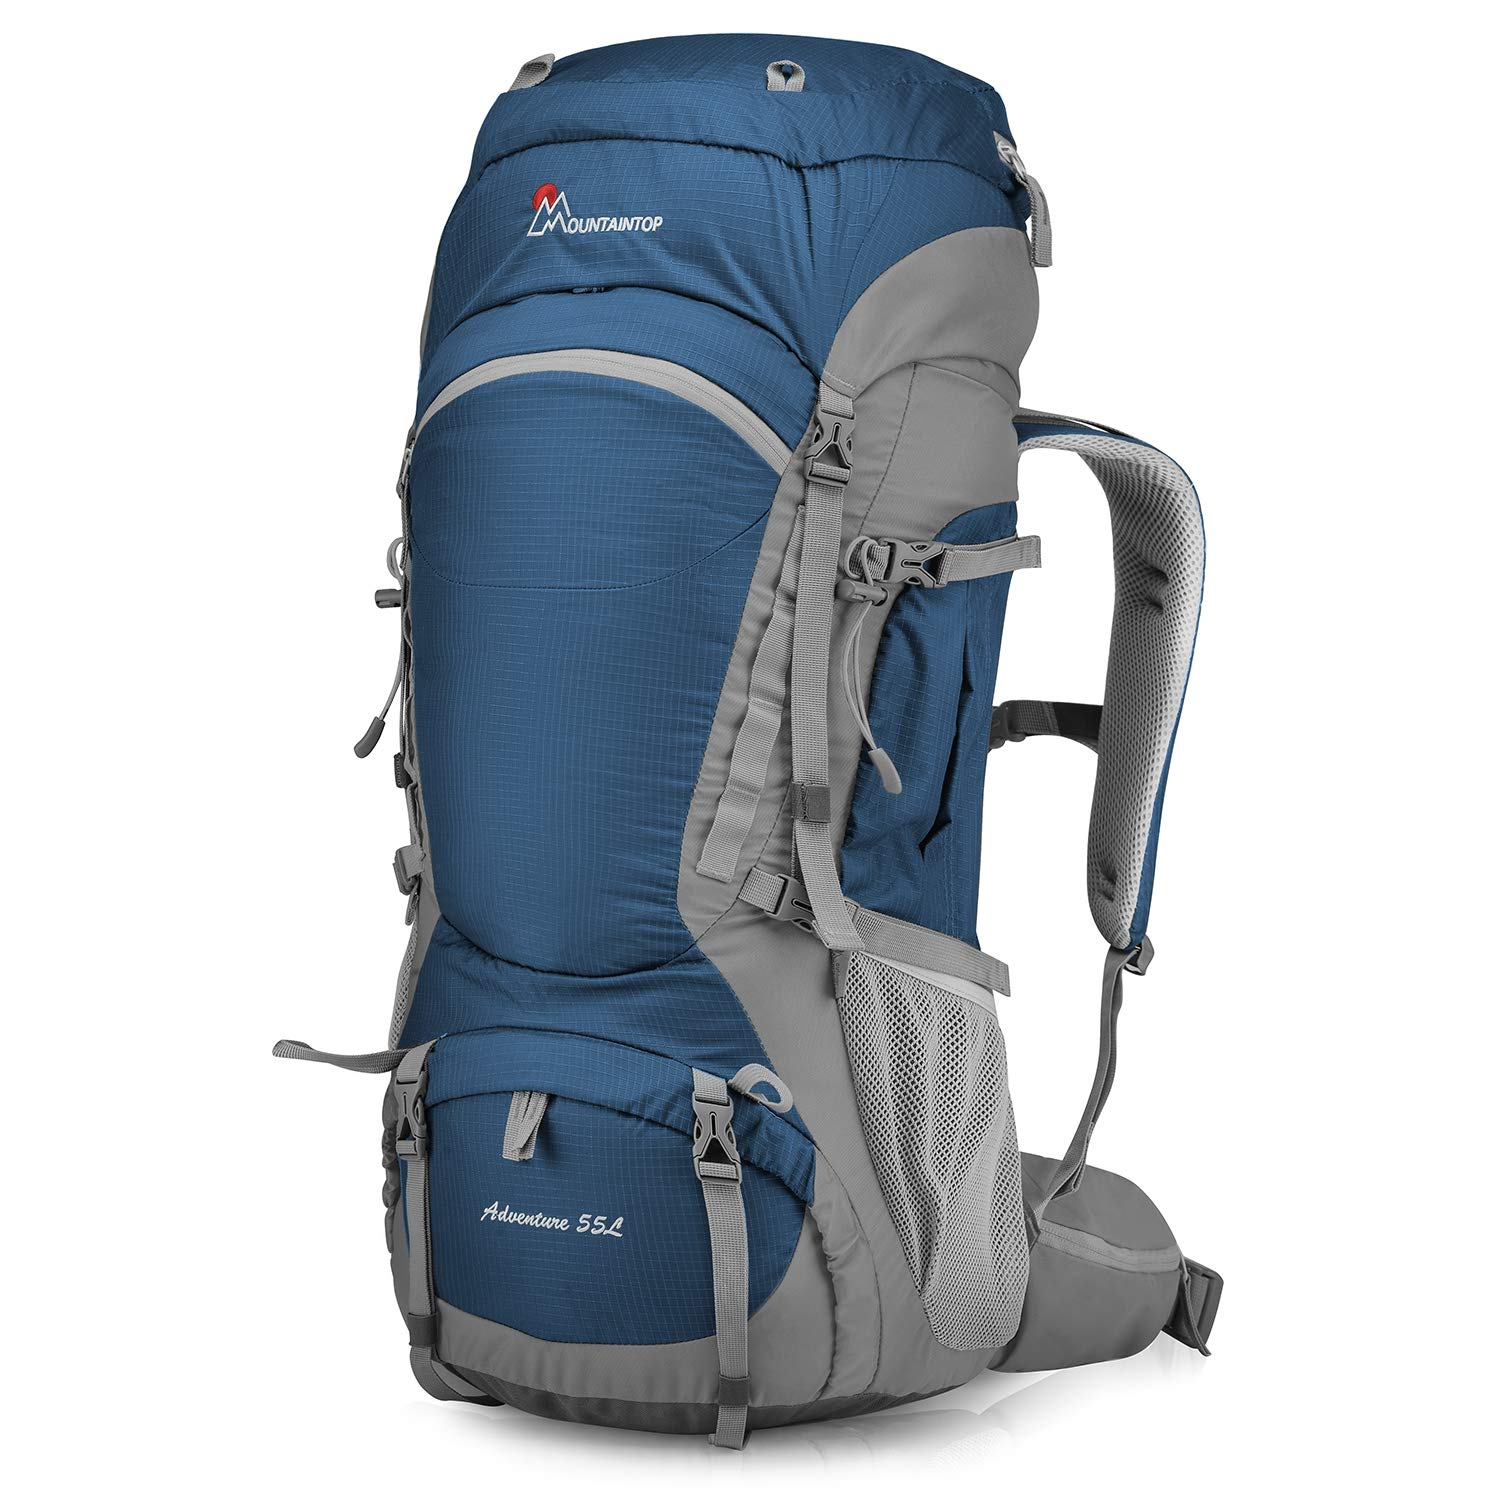 Mountaintop 55L/75L/80L Hiking Backpack with Rain Cover (type2-55L-Sapphire Blue) by MOUNTAINTOP